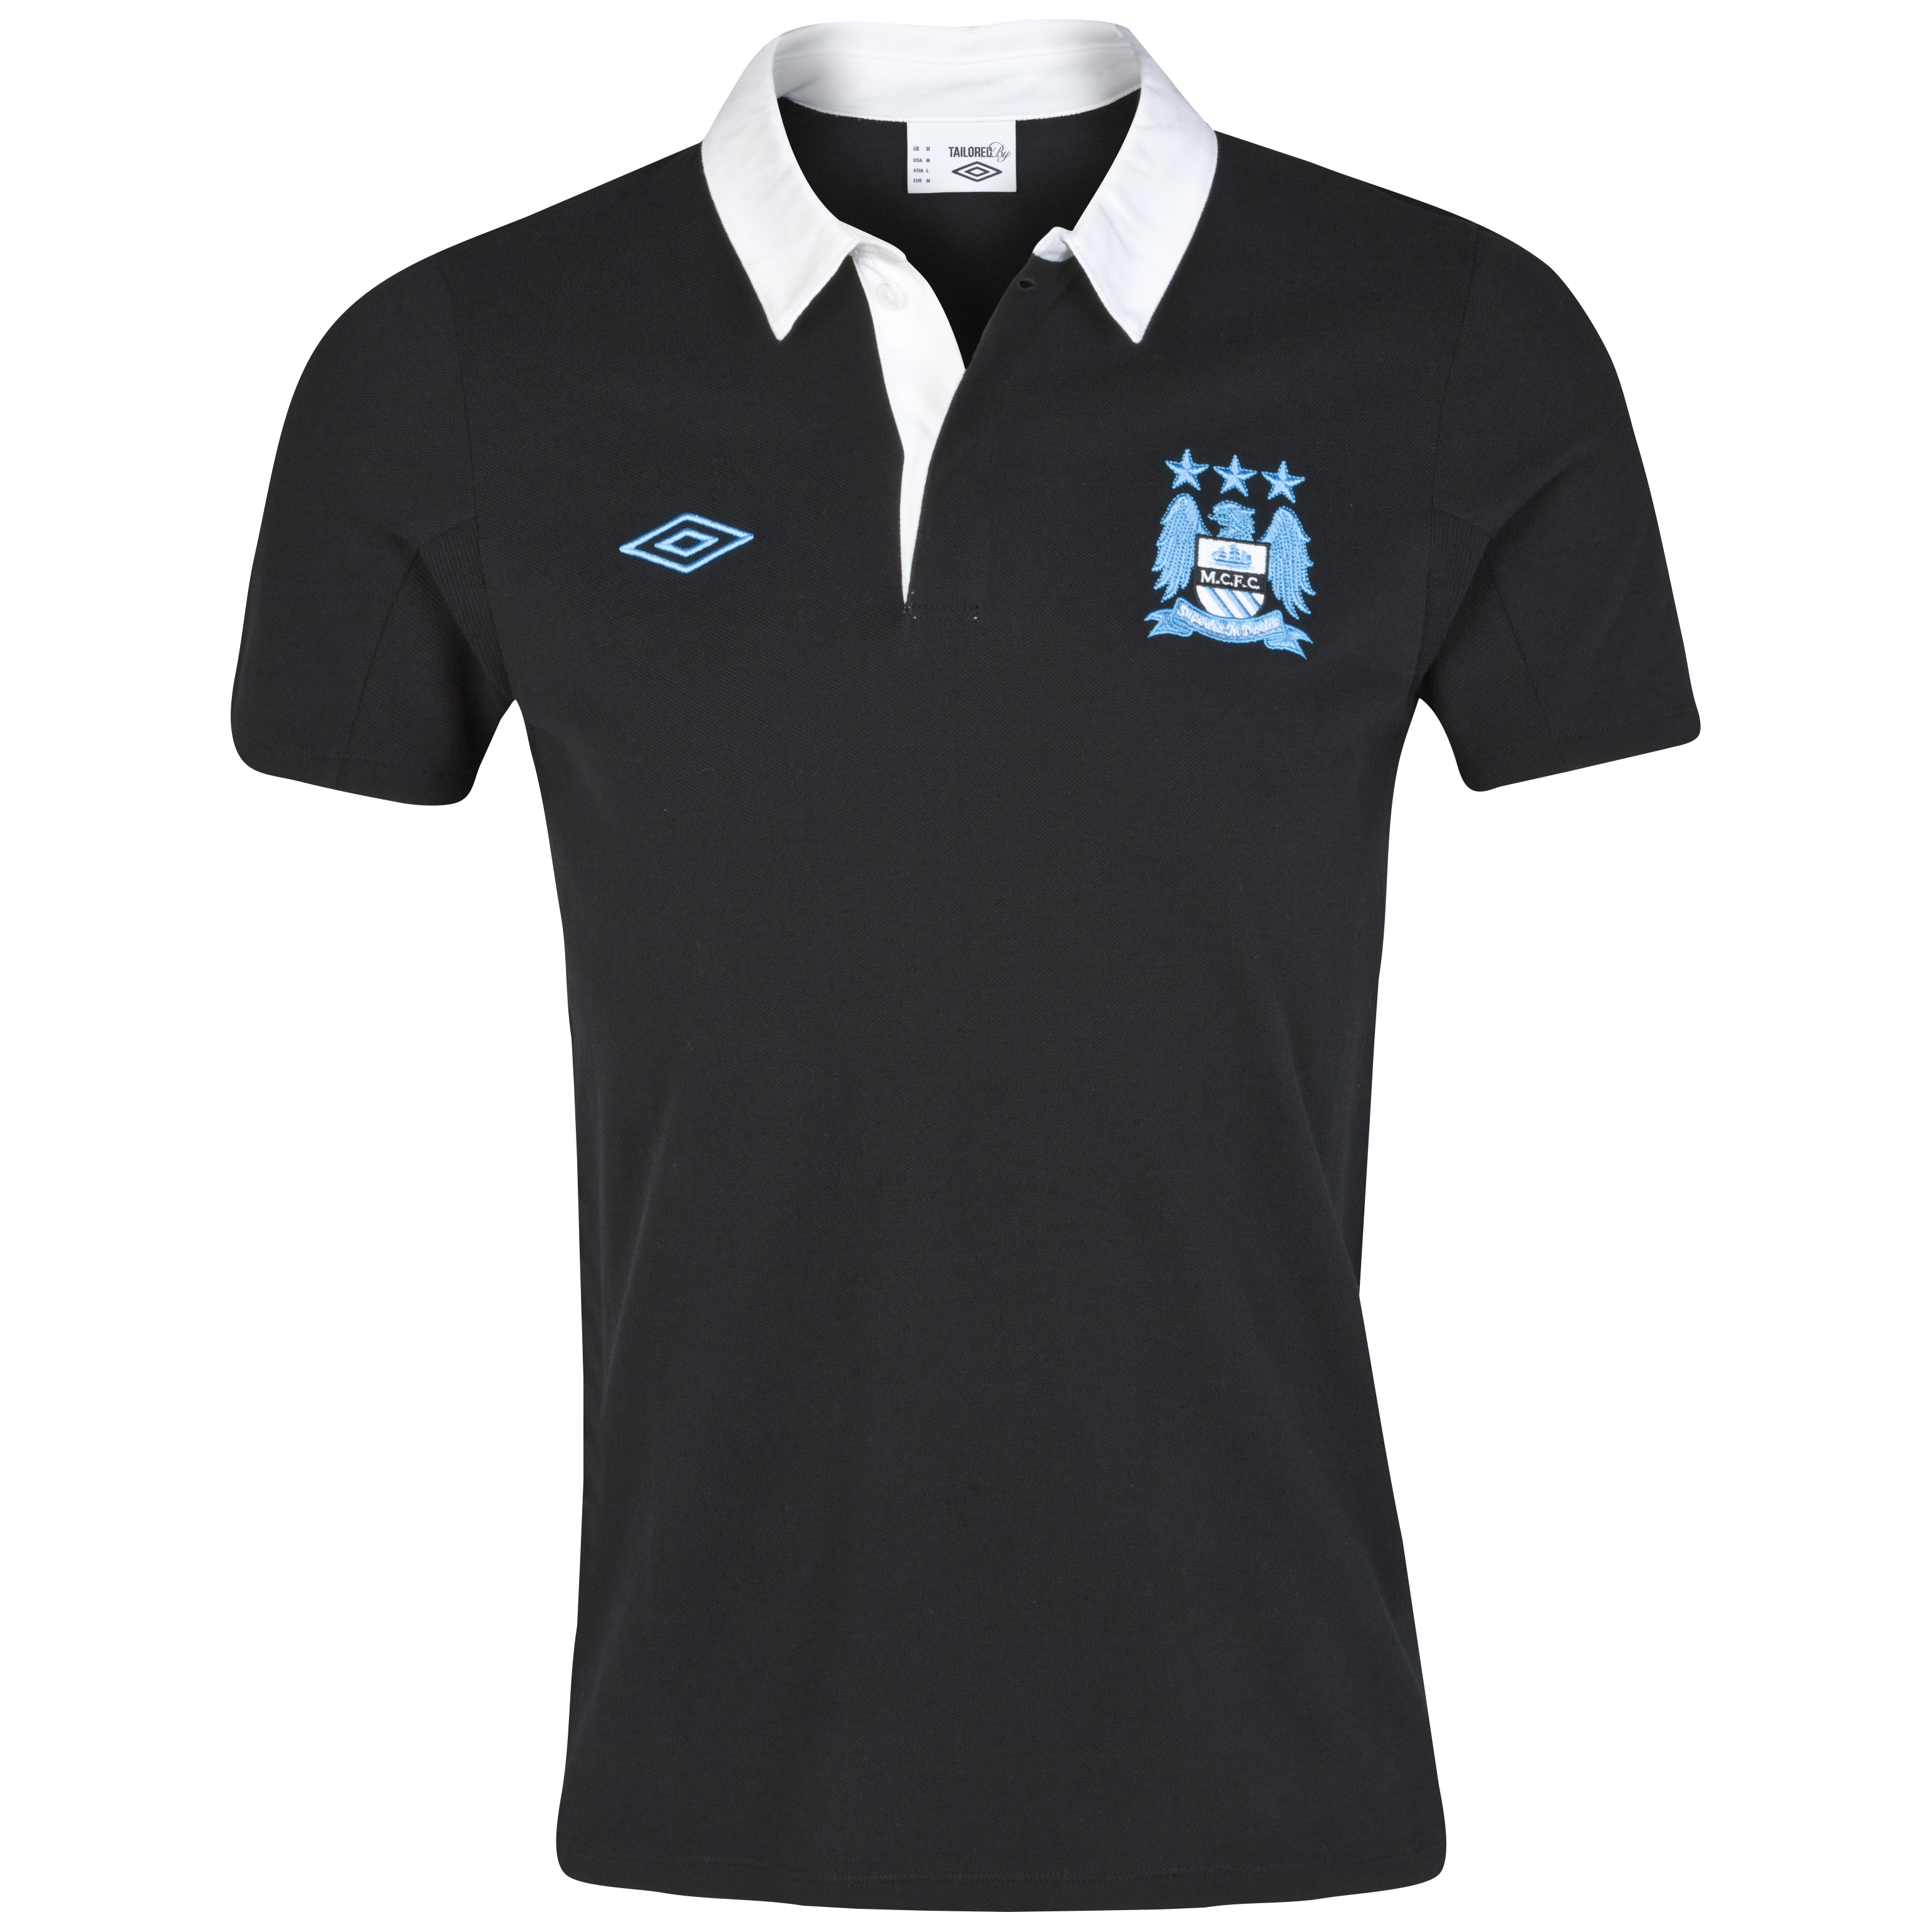 Manchester City WTC Polo - Black/White